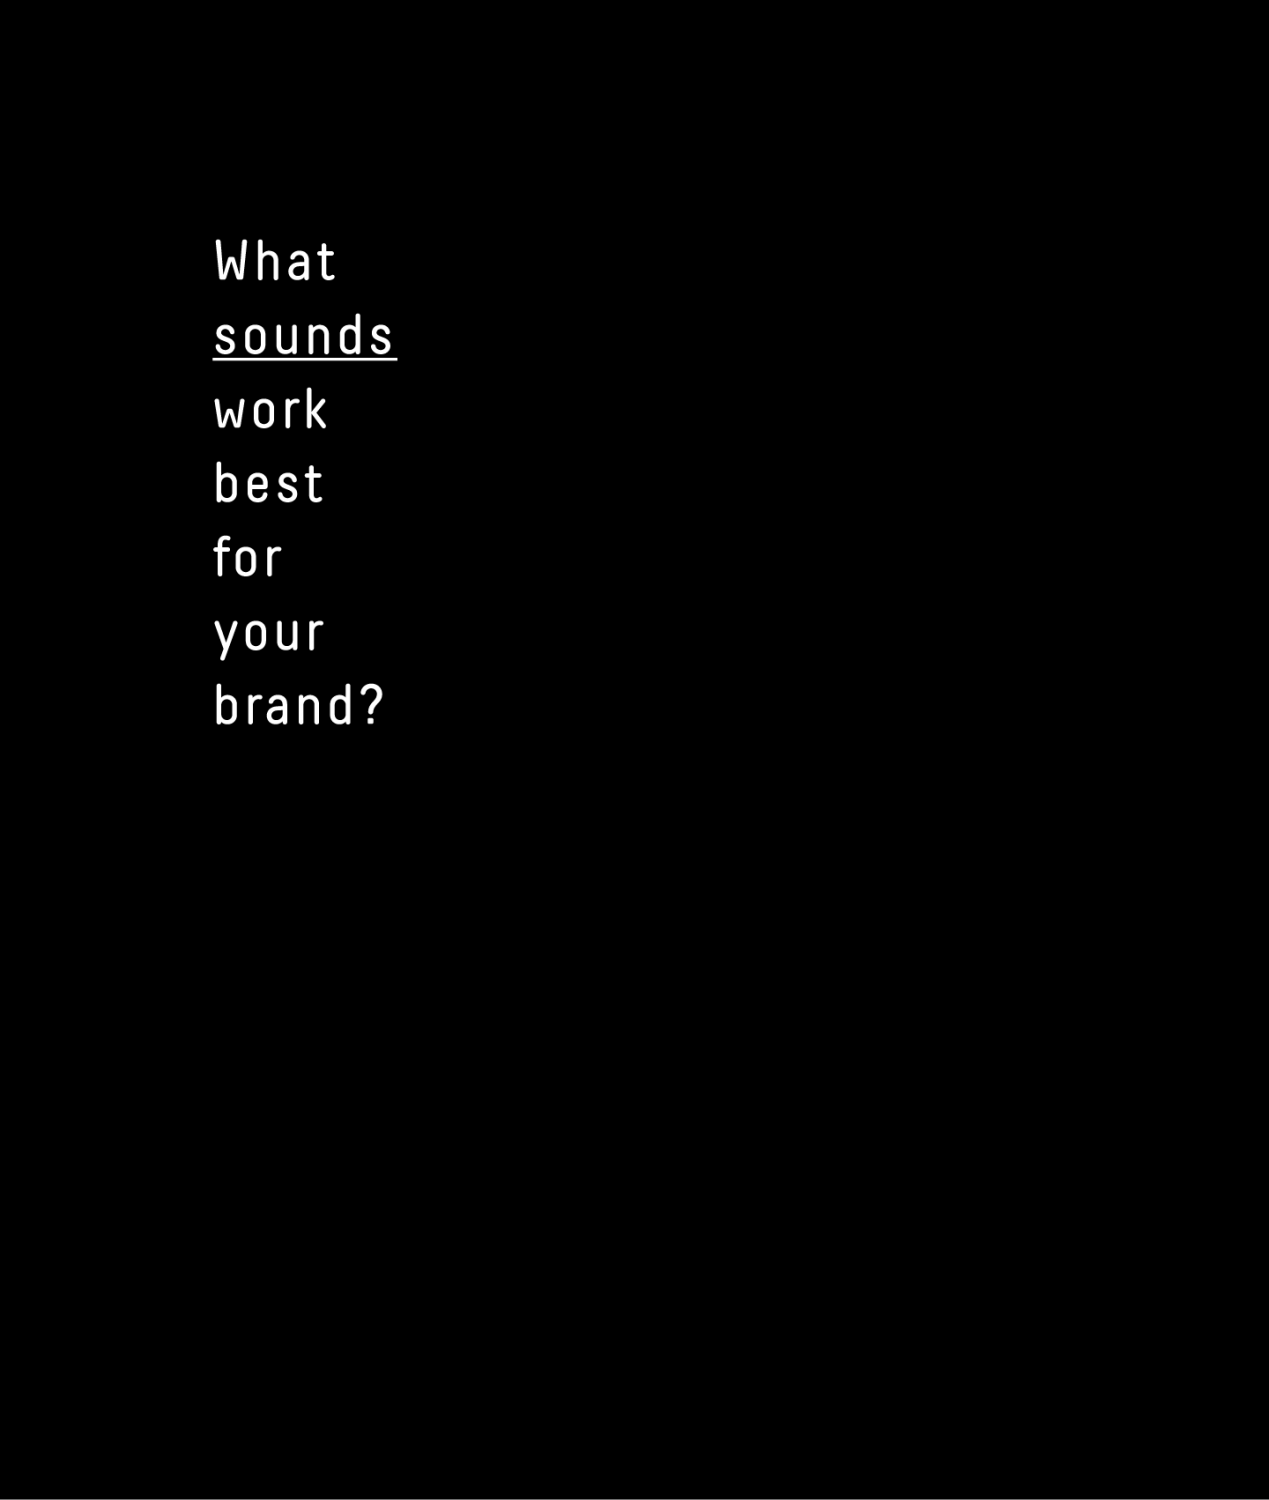 Using Stock Audio for Designing: What Sounds Work Best for Your Brand?